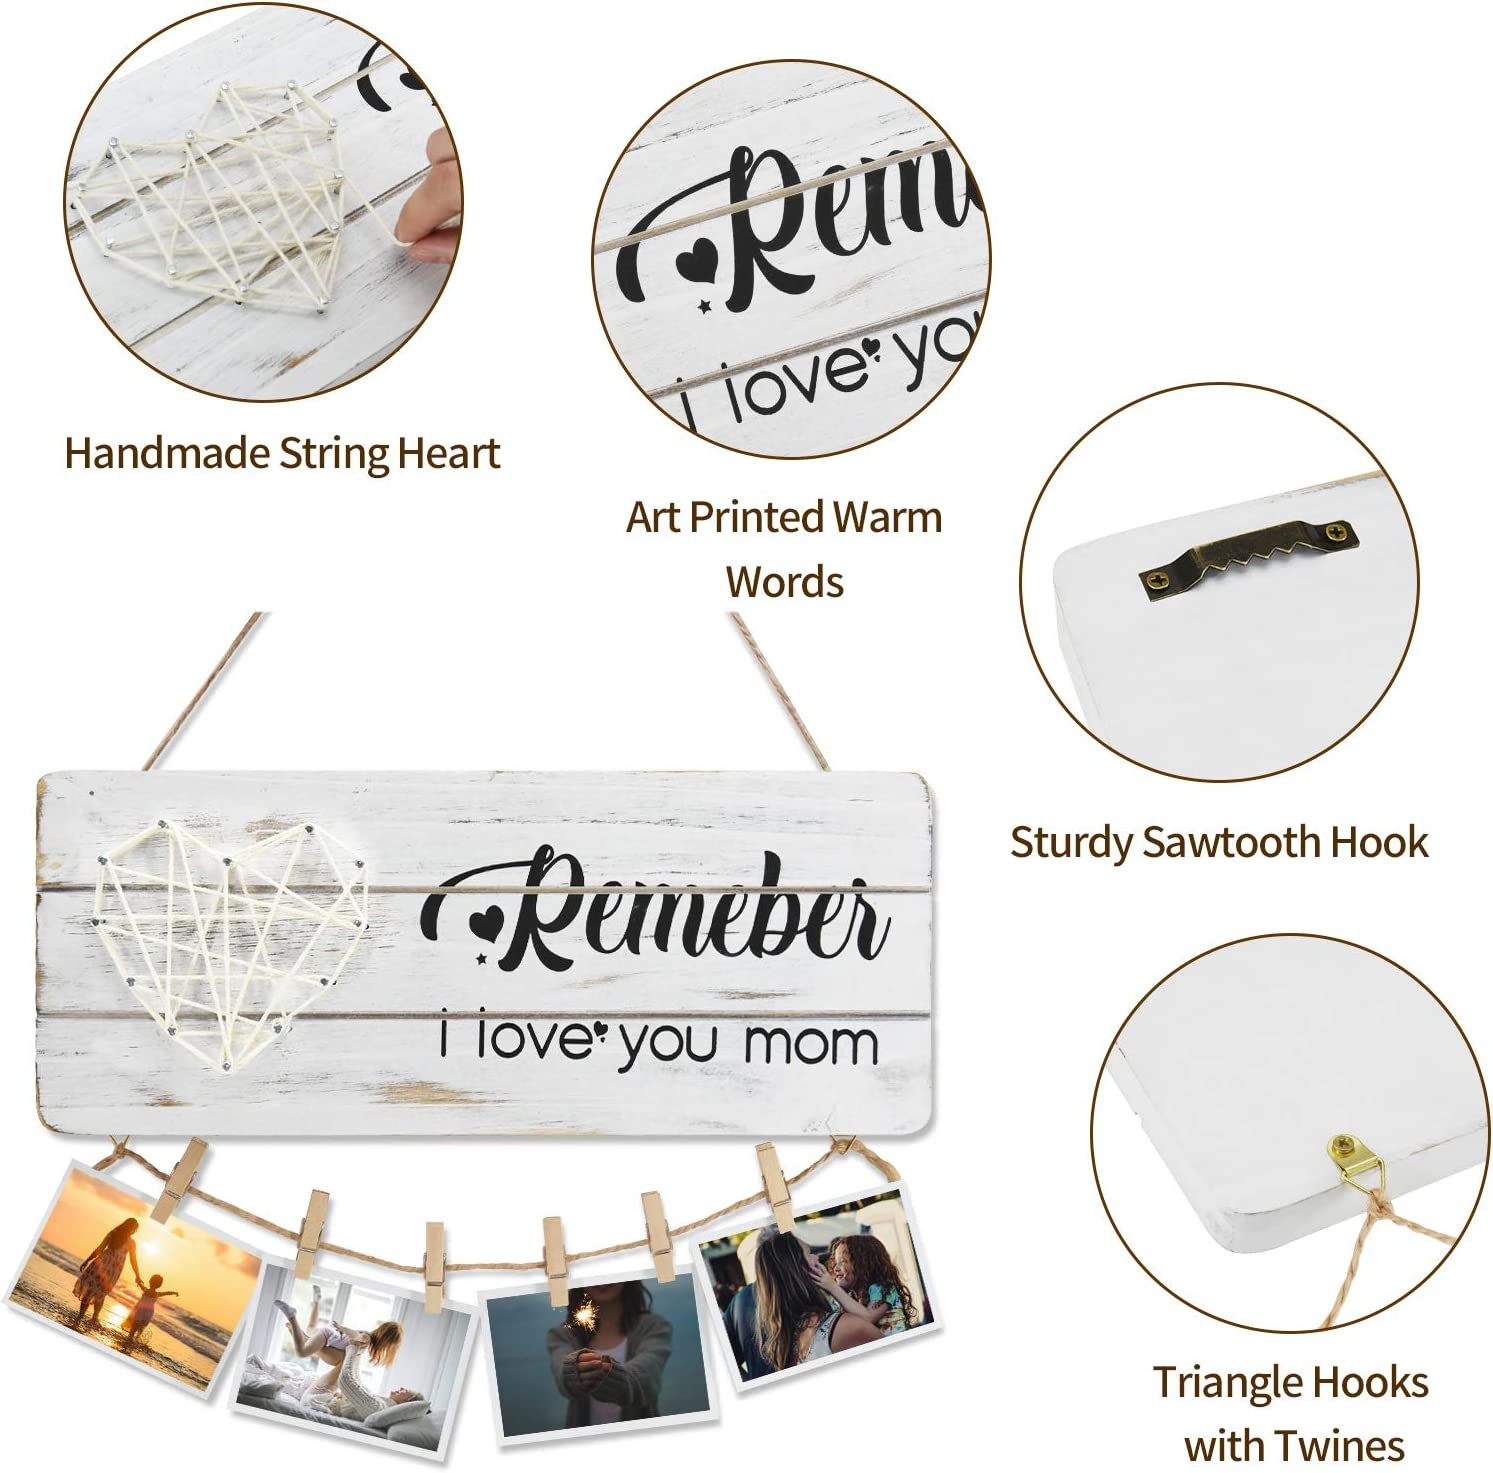 MEMOORIAL Wooden Hanging Photo Display Sign Wooden Signs for Wall Plaques Gifts Photo Holder for Mom from Daughter and Son Mom Gift Hanging Picture Frame with Clips and Twine